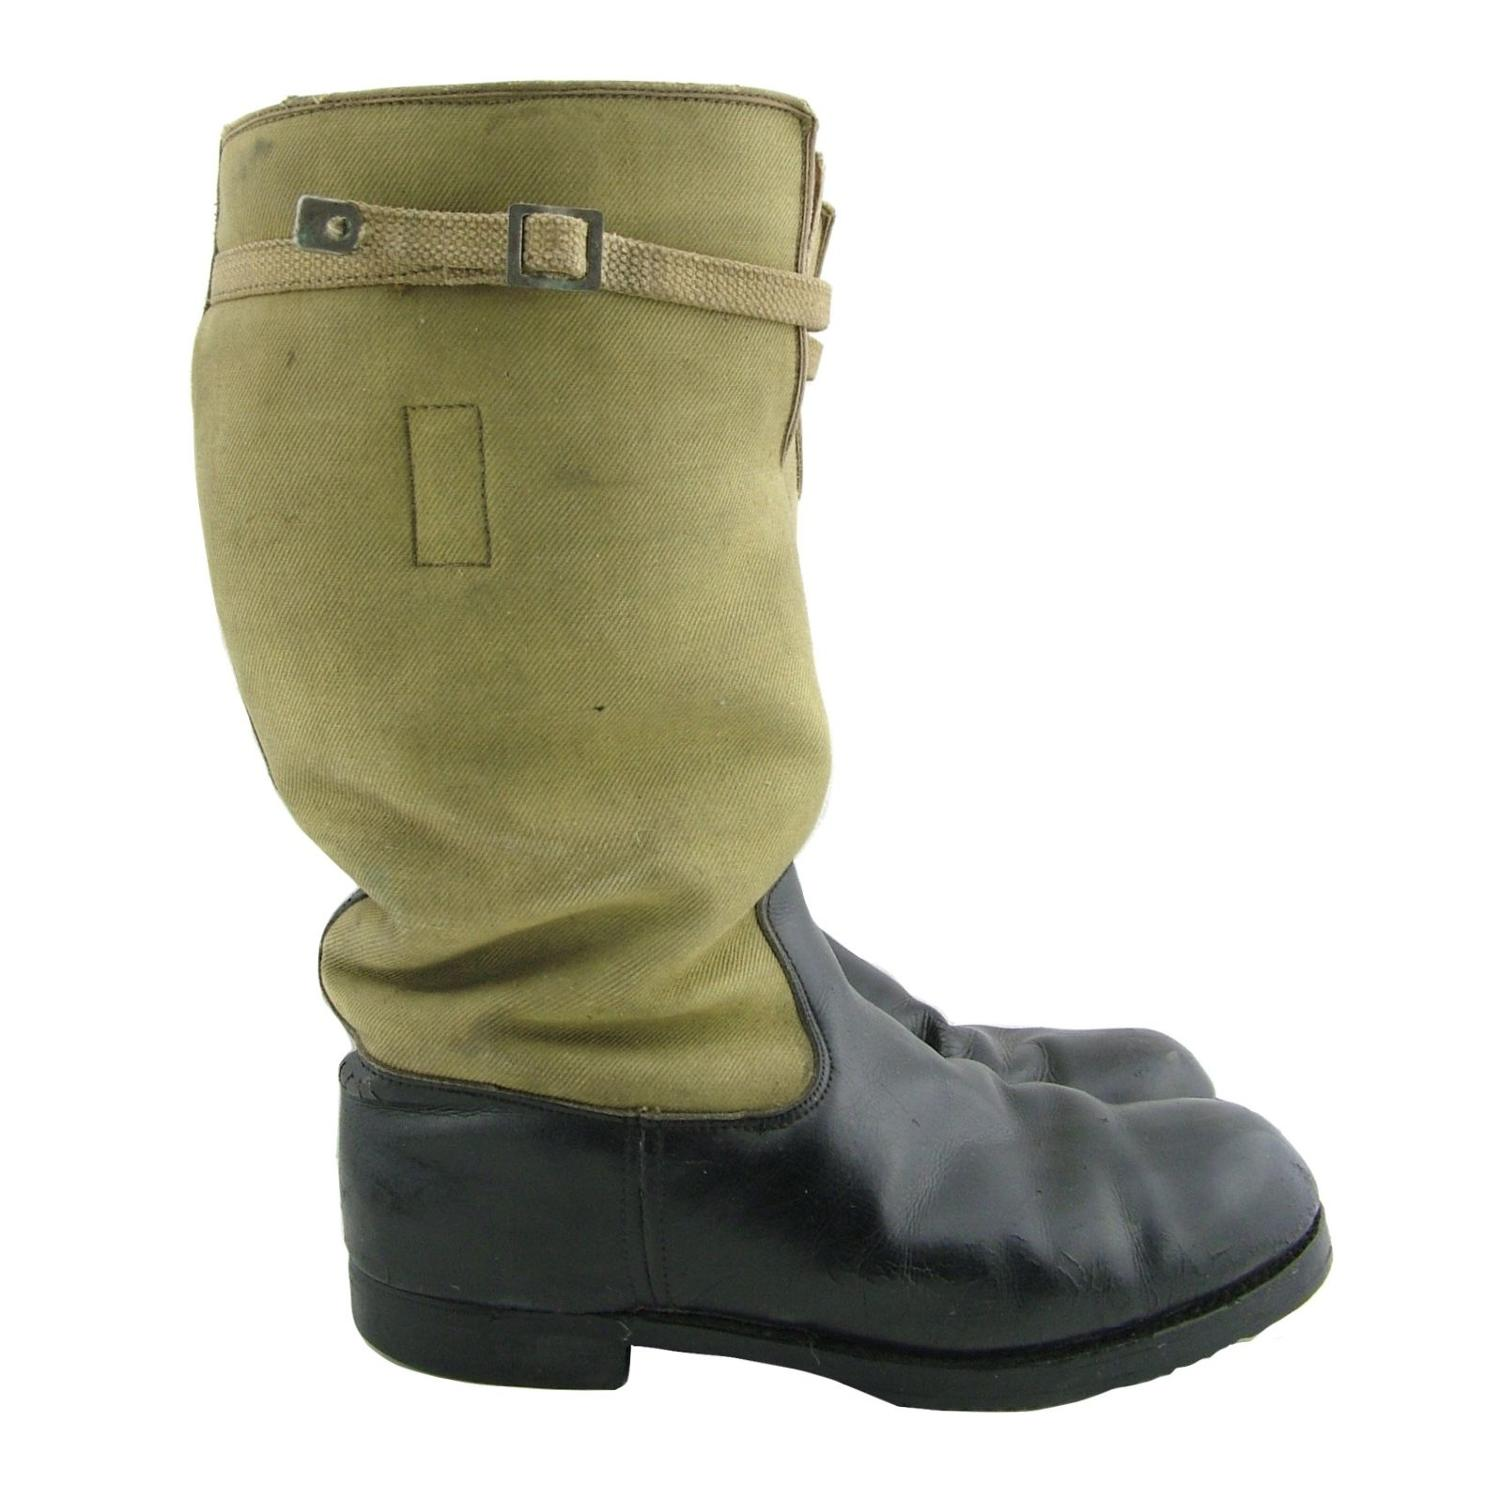 RAF 1939 pattern flying boots, S8